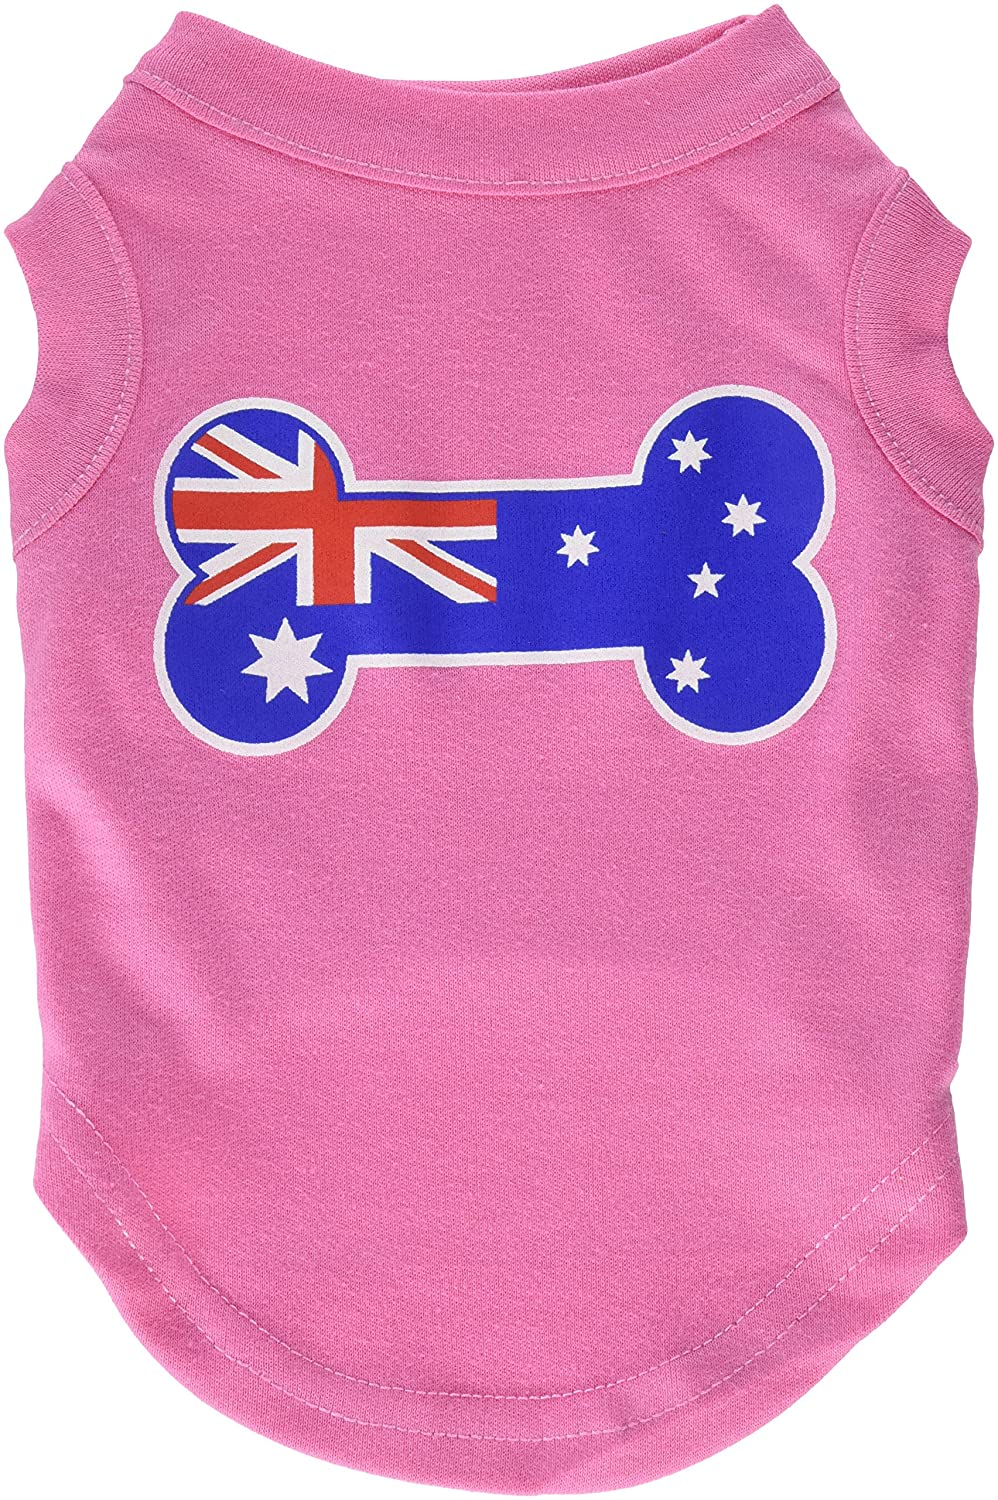 Bright Pink s Bright Pink s Mirage Pet Products Bone Shaped Australian Flag Screen Print Shirt, Small, Bright Pink